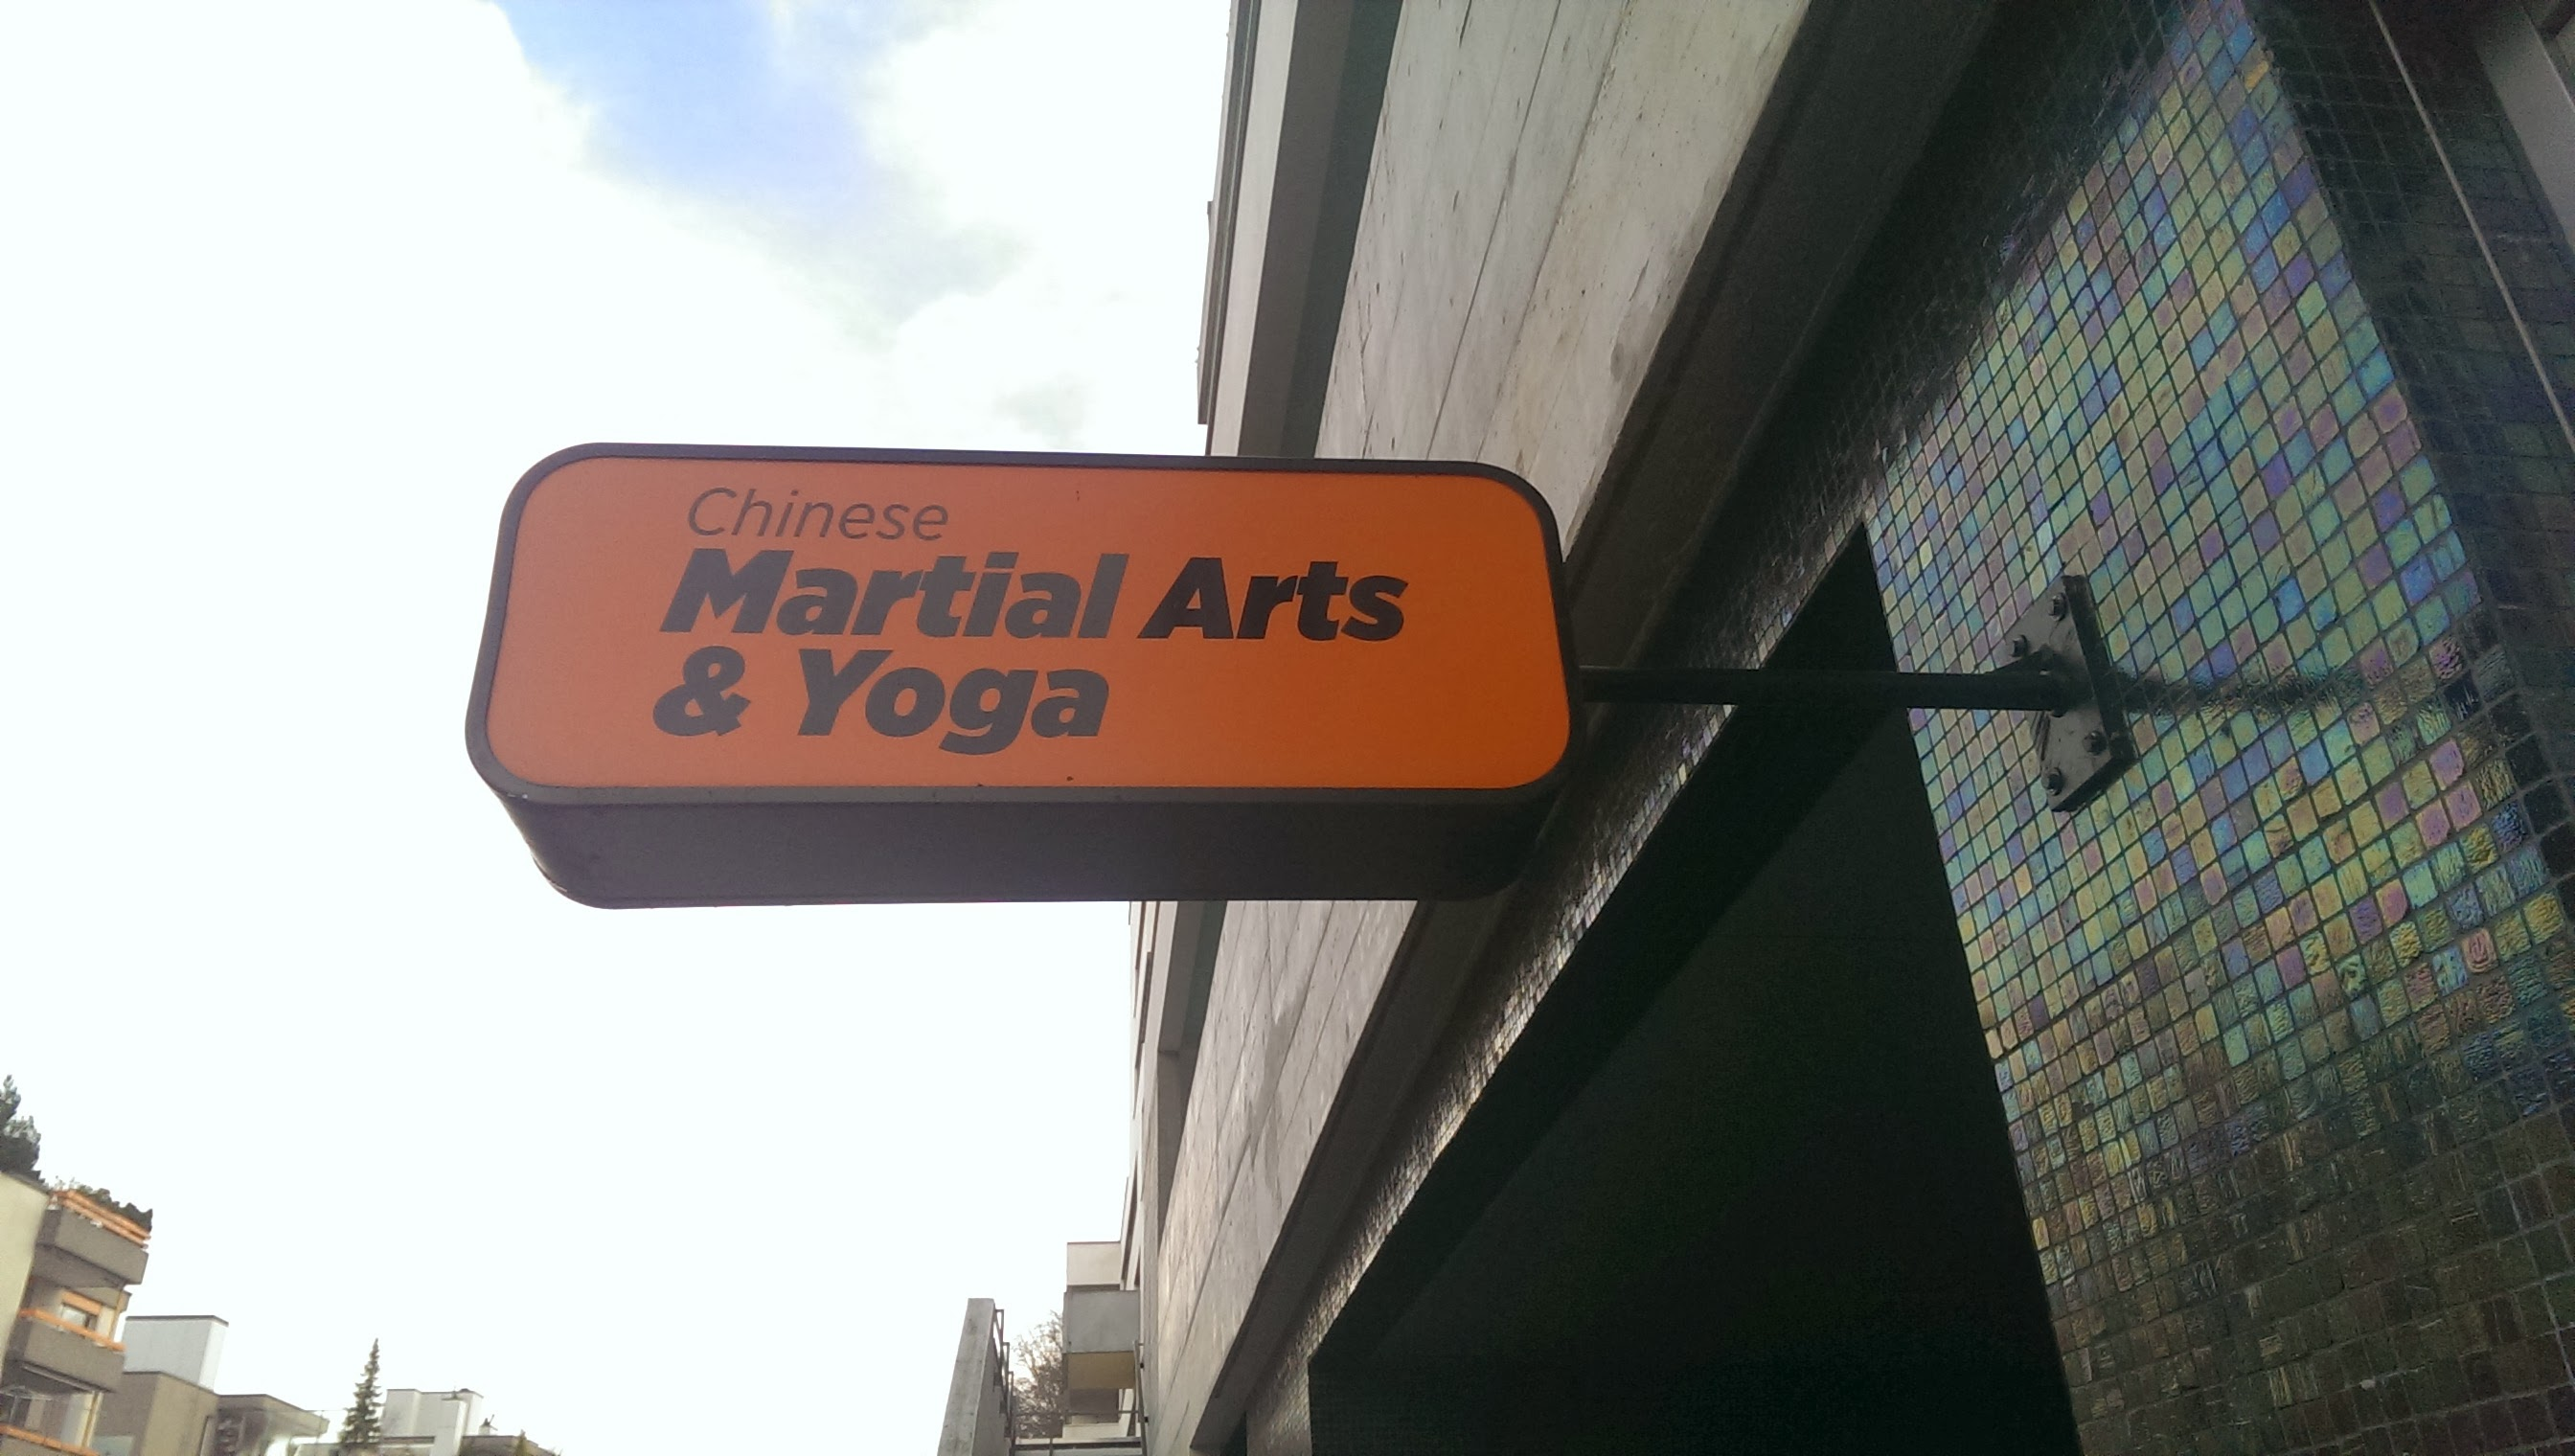 CHINESE MARTIAL ARTS & YOGA